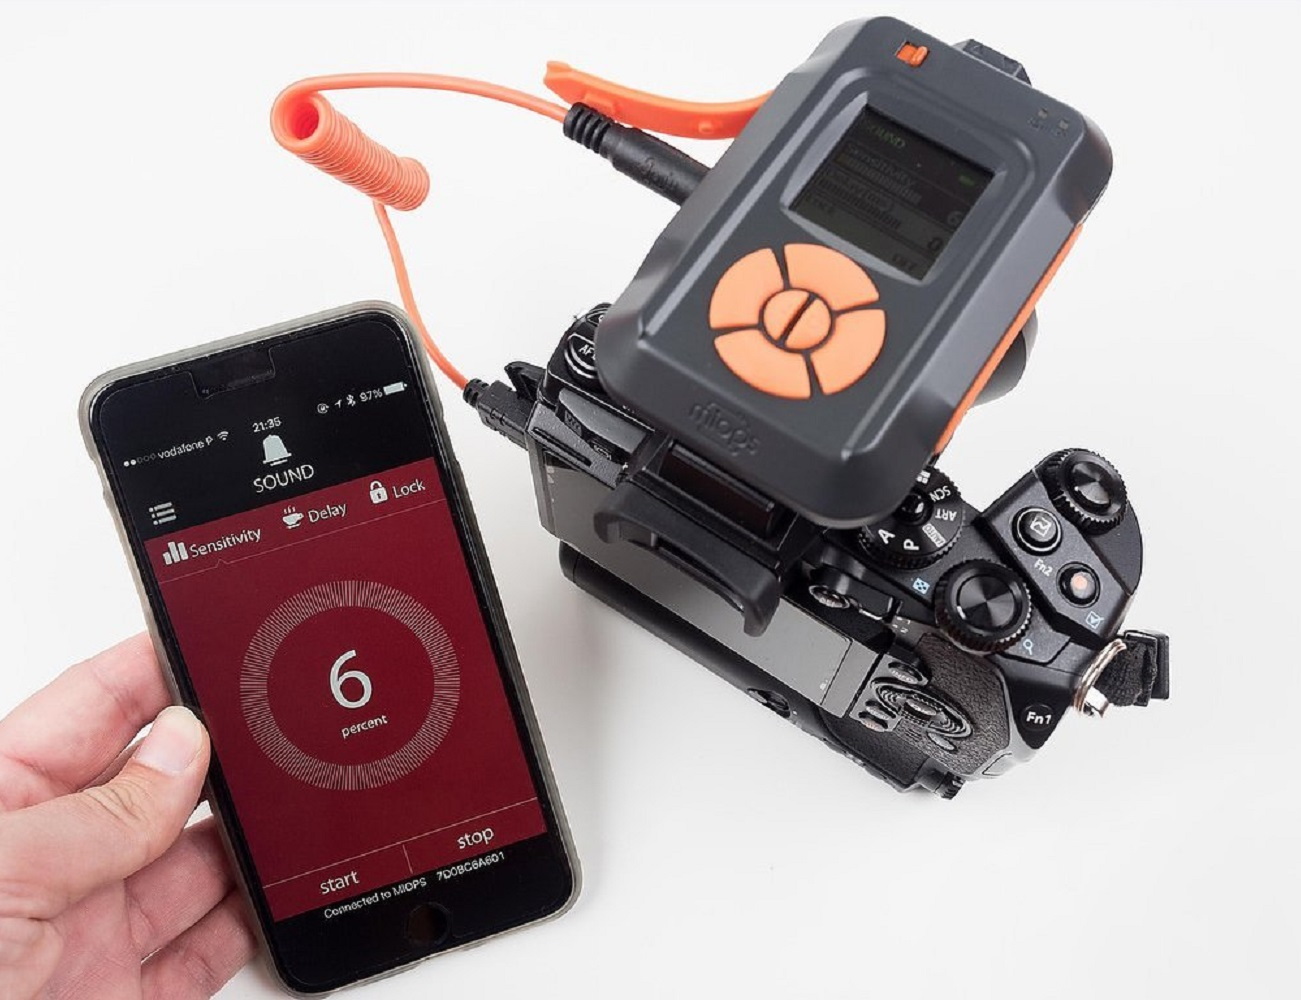 MIOPS – Smartphone Controllable Camera Trigger for High Speed Photography